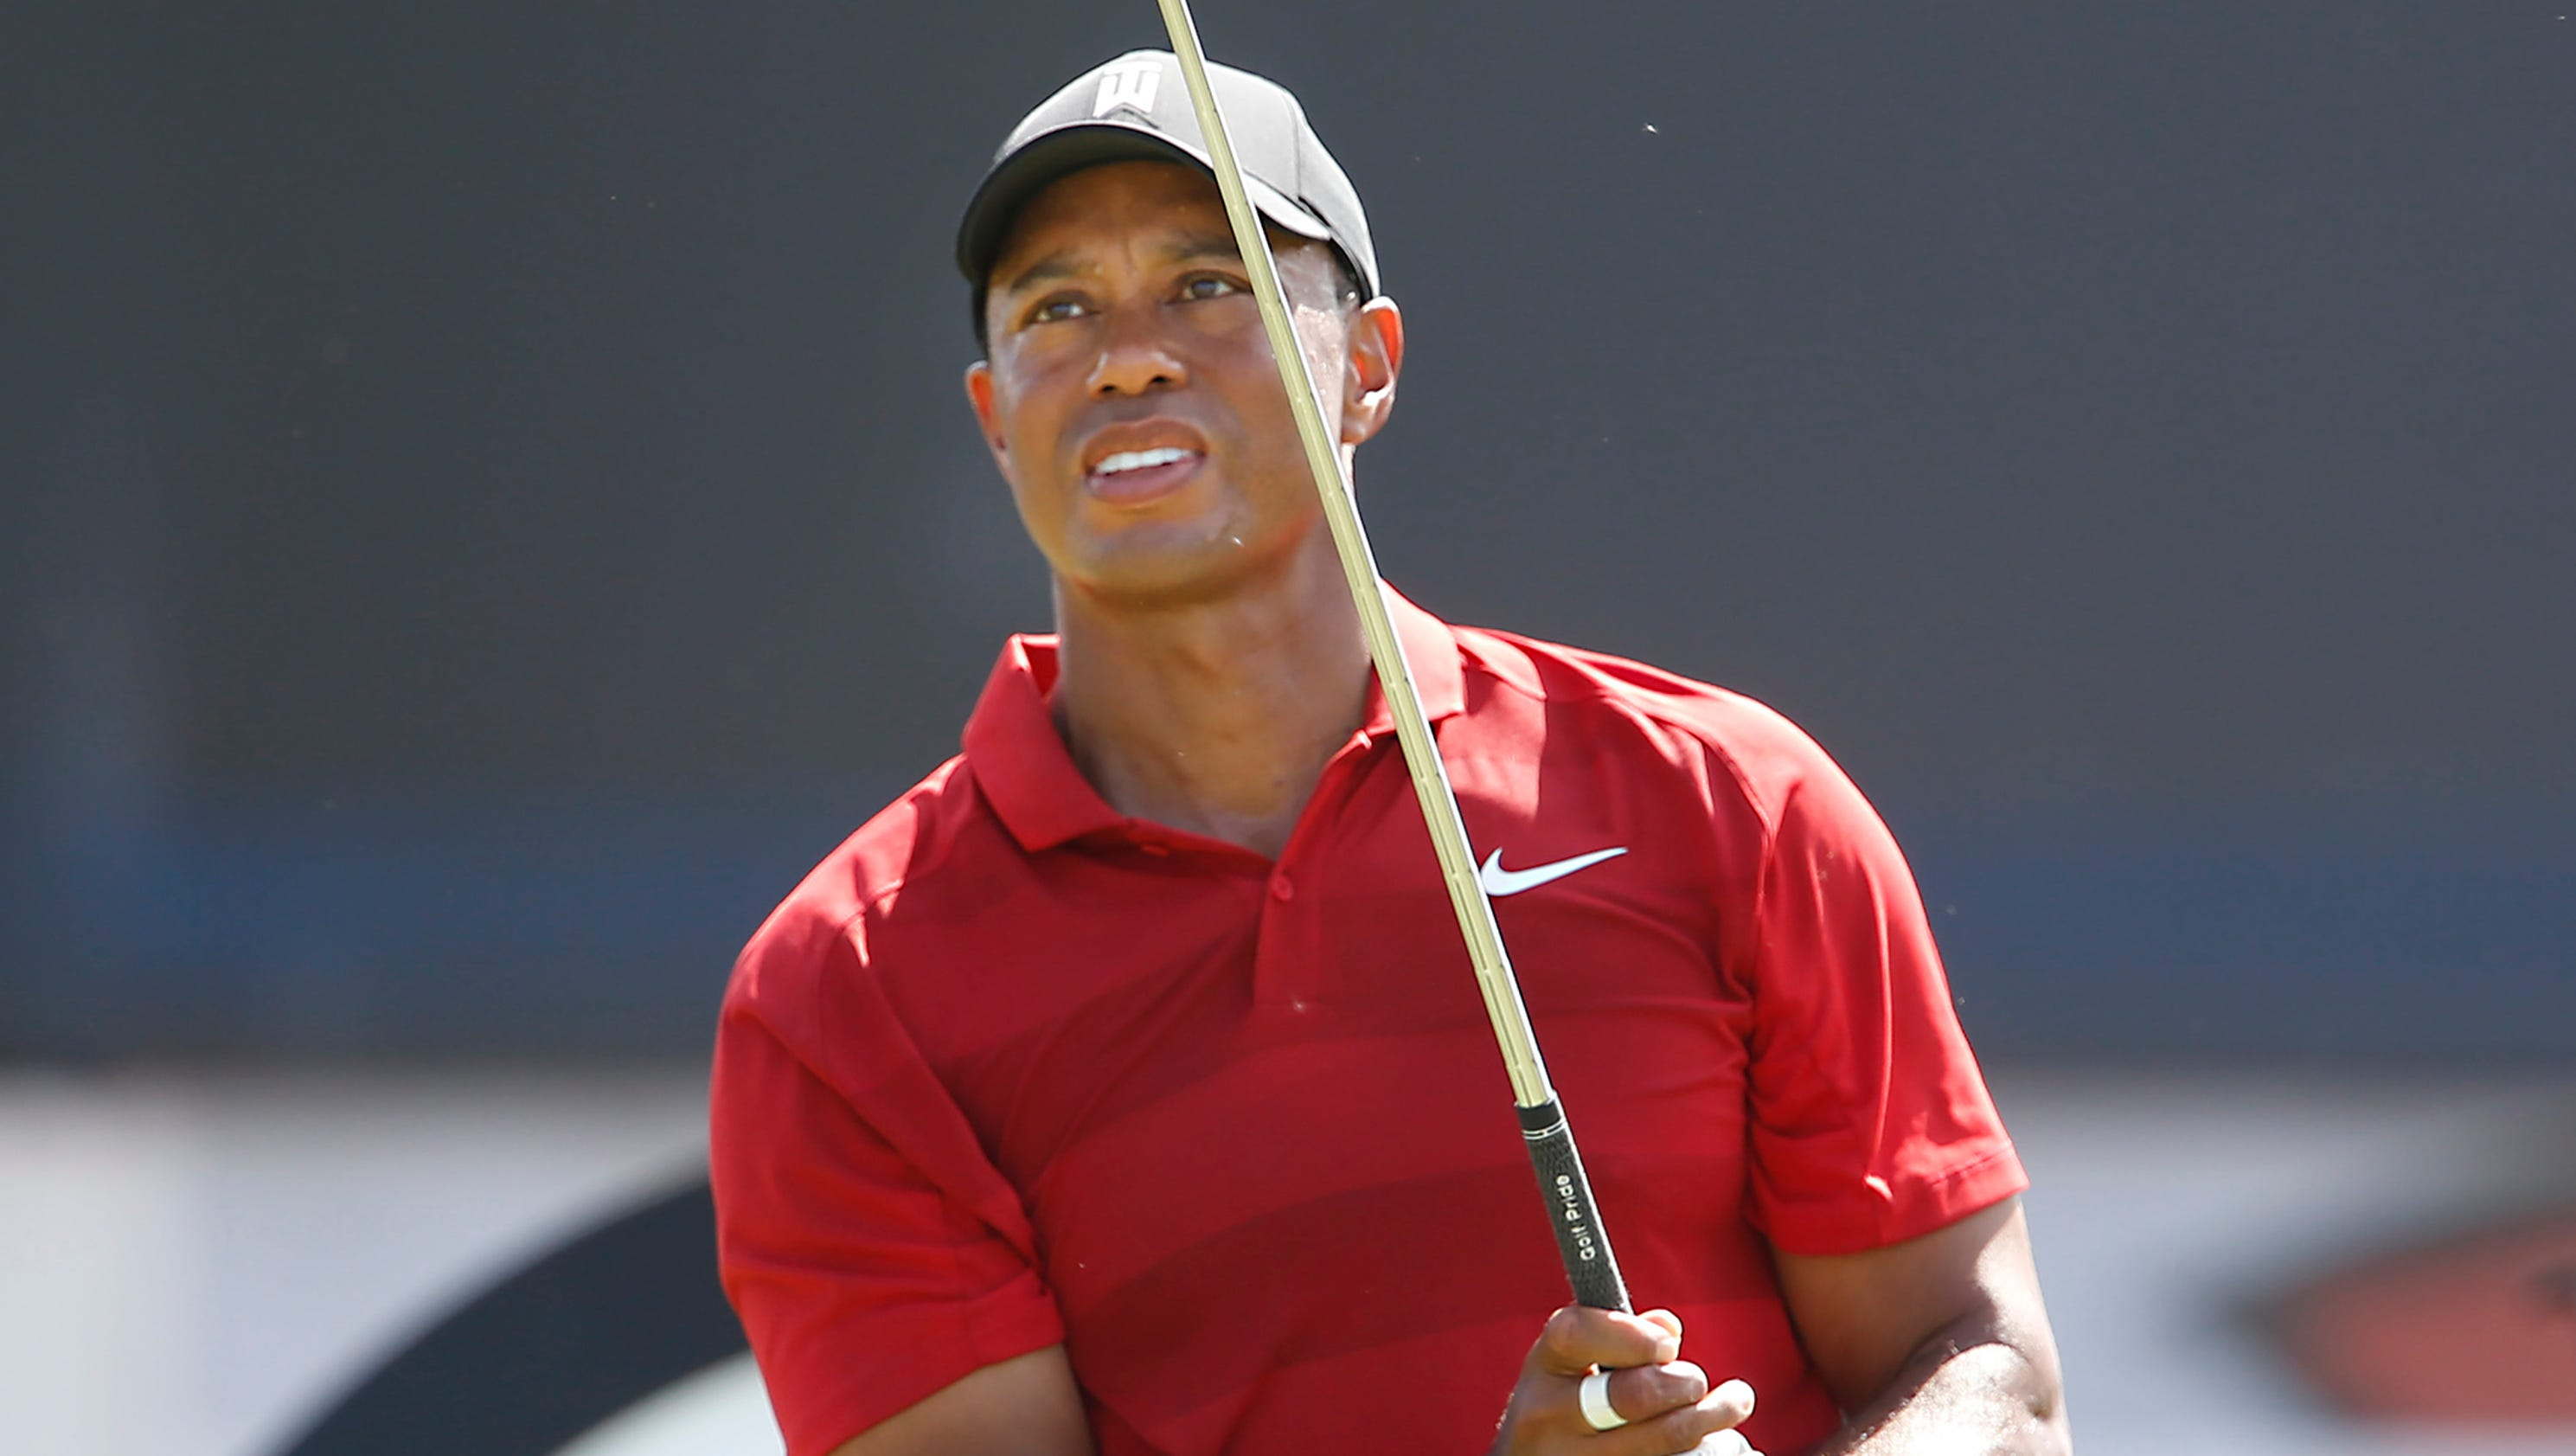 Tiger Woods boosts golf ratings for NBC Sports